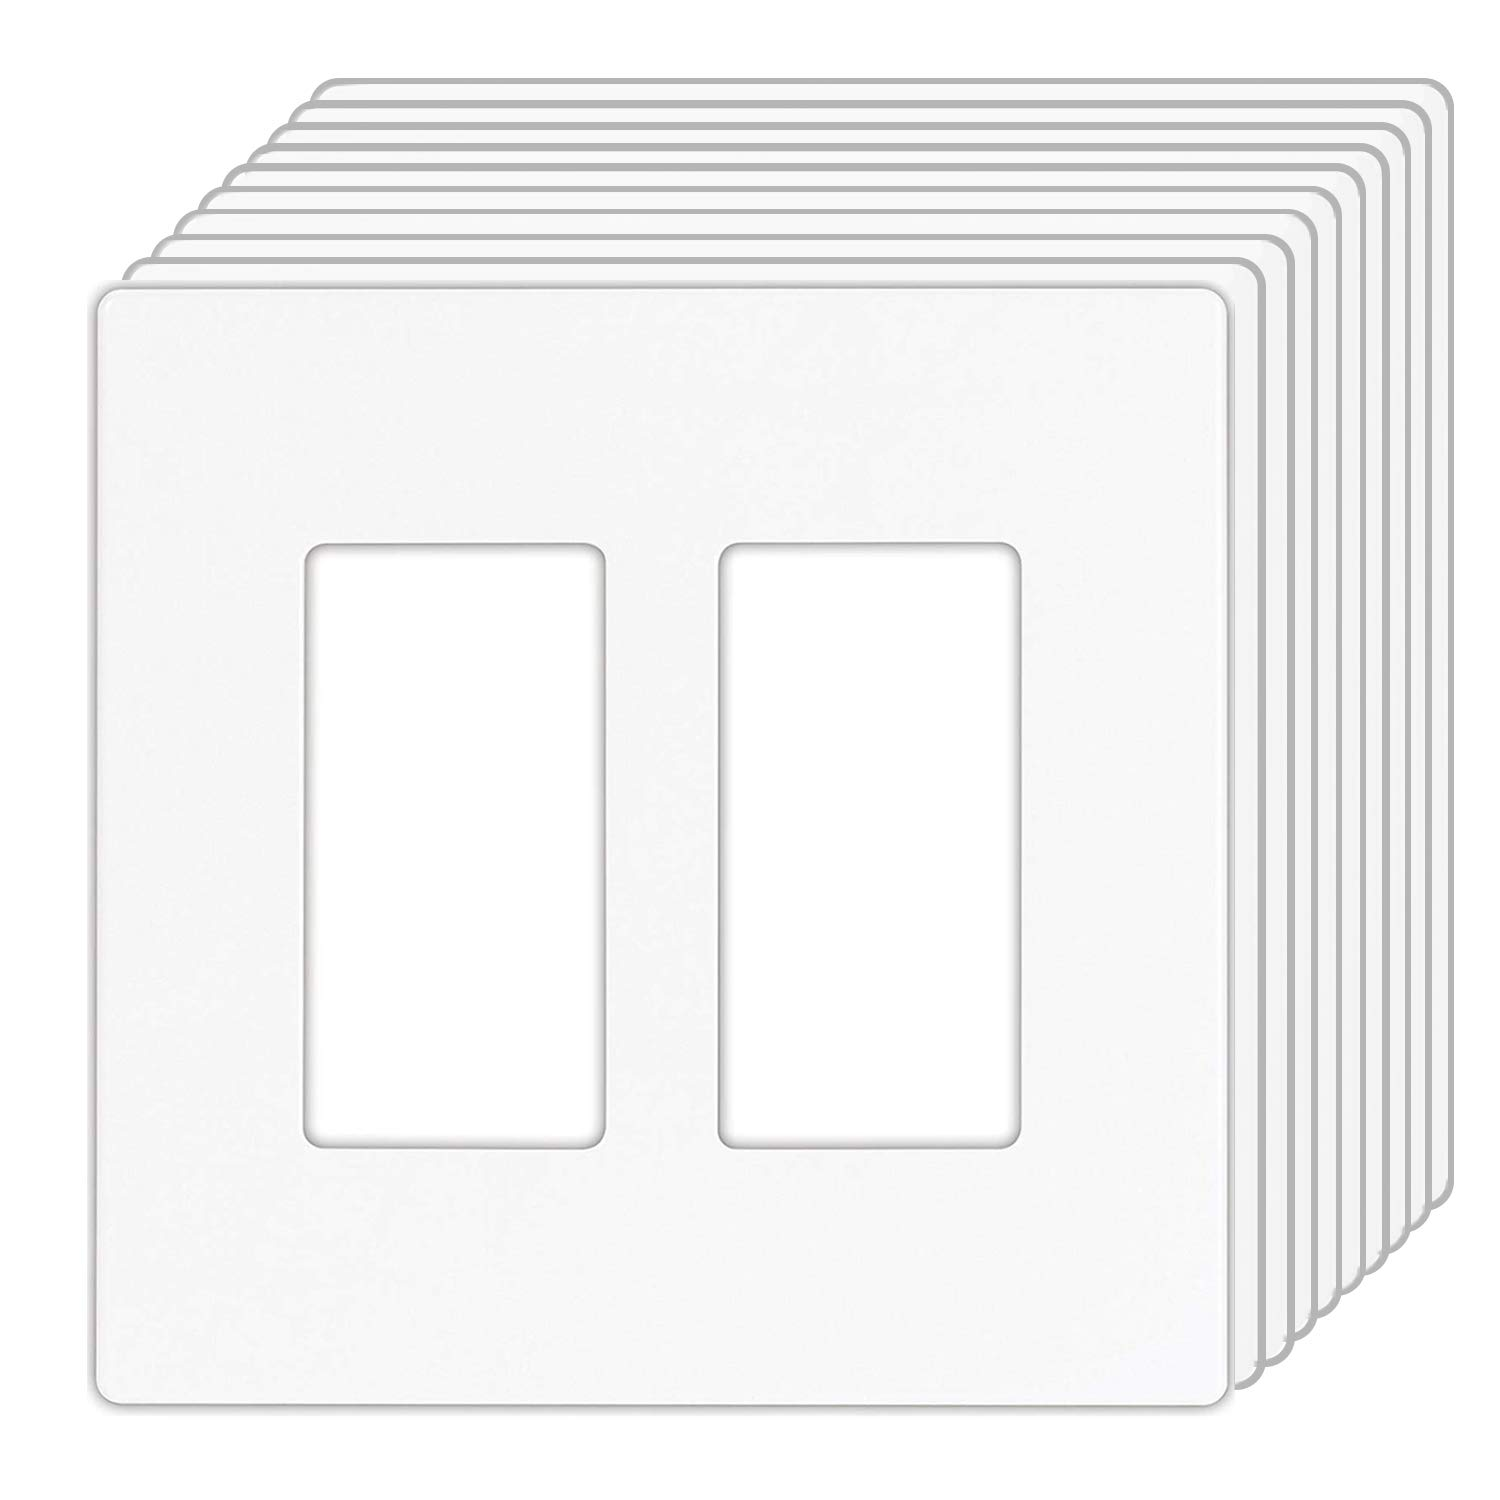 [10 Pack] BESTTEN USWP4 Series, Mid-Sized 2-Gang Screwless Wall Plates, Outlet Covers for GFCI, Decor Receptacles and Light Switches, Child Safe, Unbreakable PC, UL Listed, White